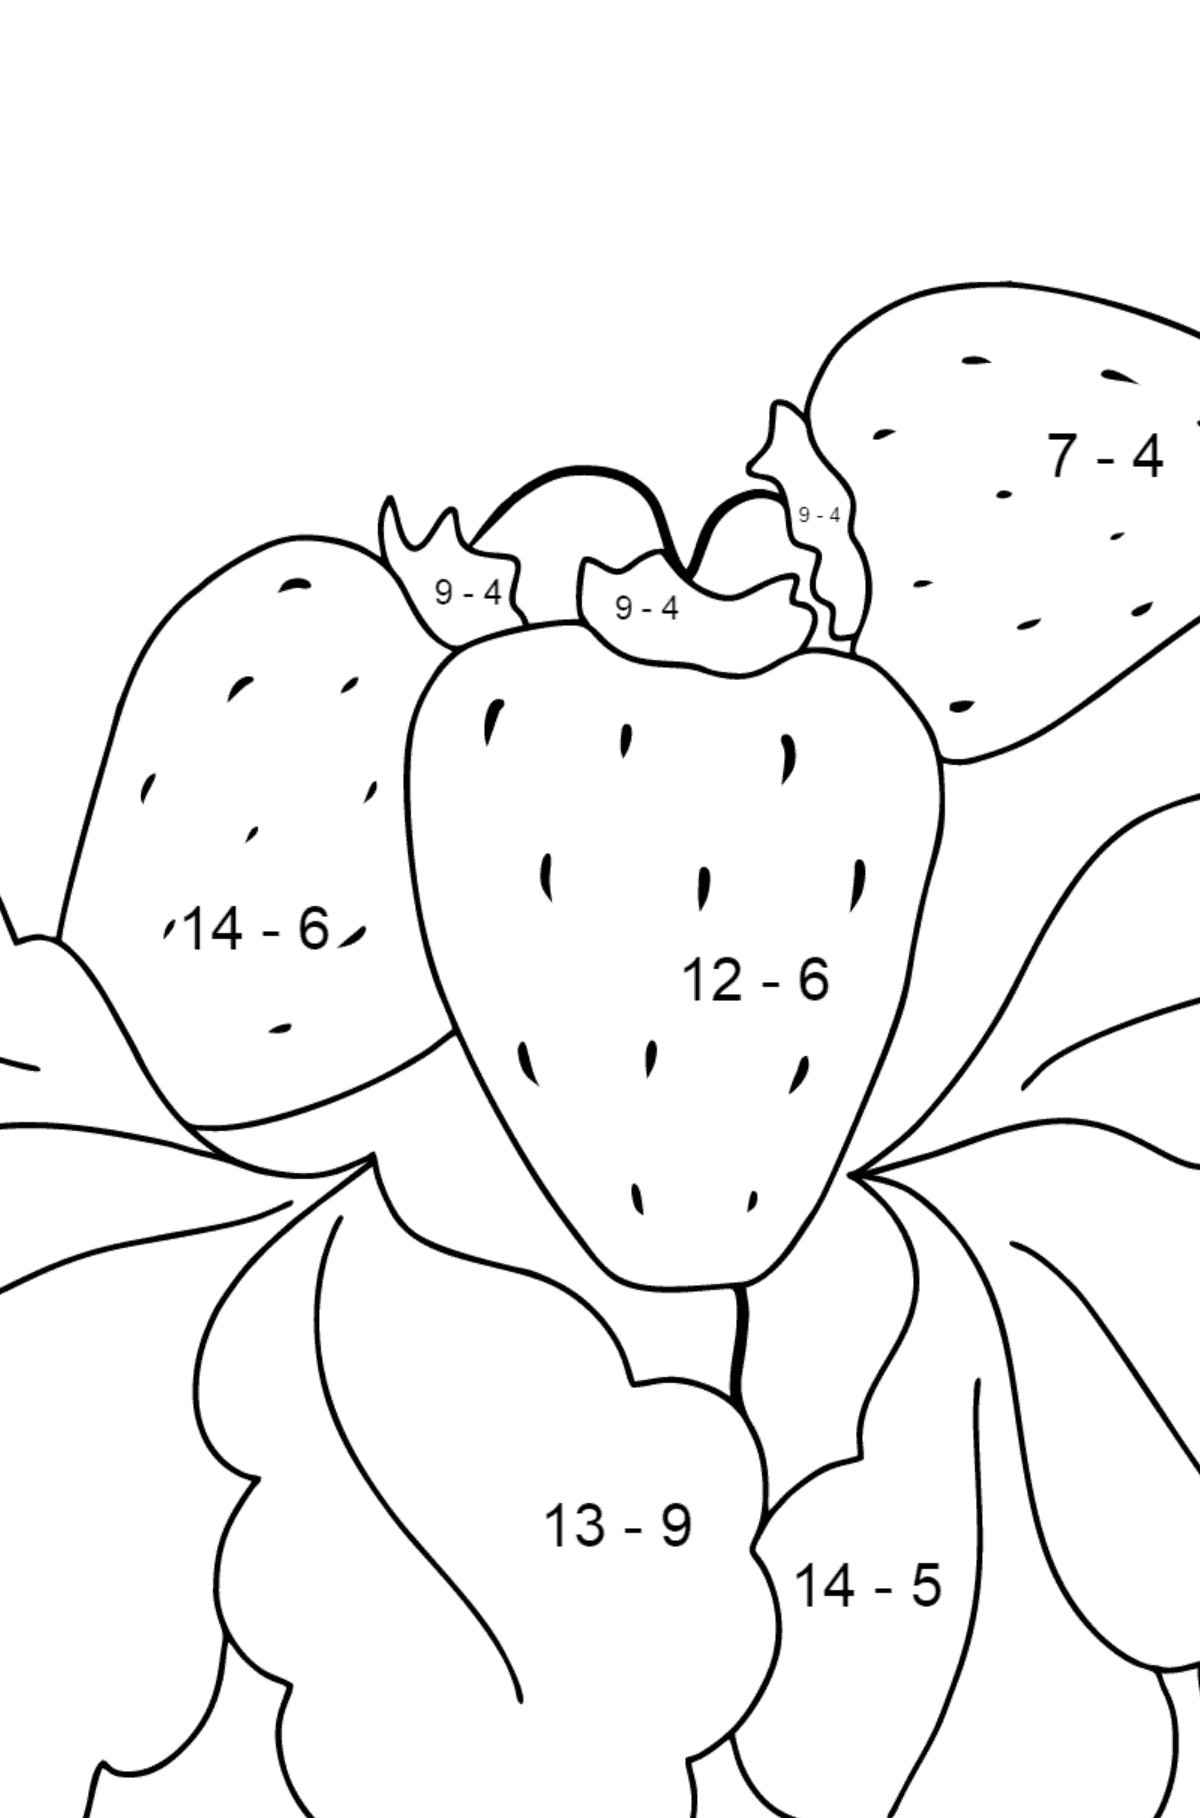 Coloring Page - Summer and Strawberries - Math Coloring - Subtraction for Kids